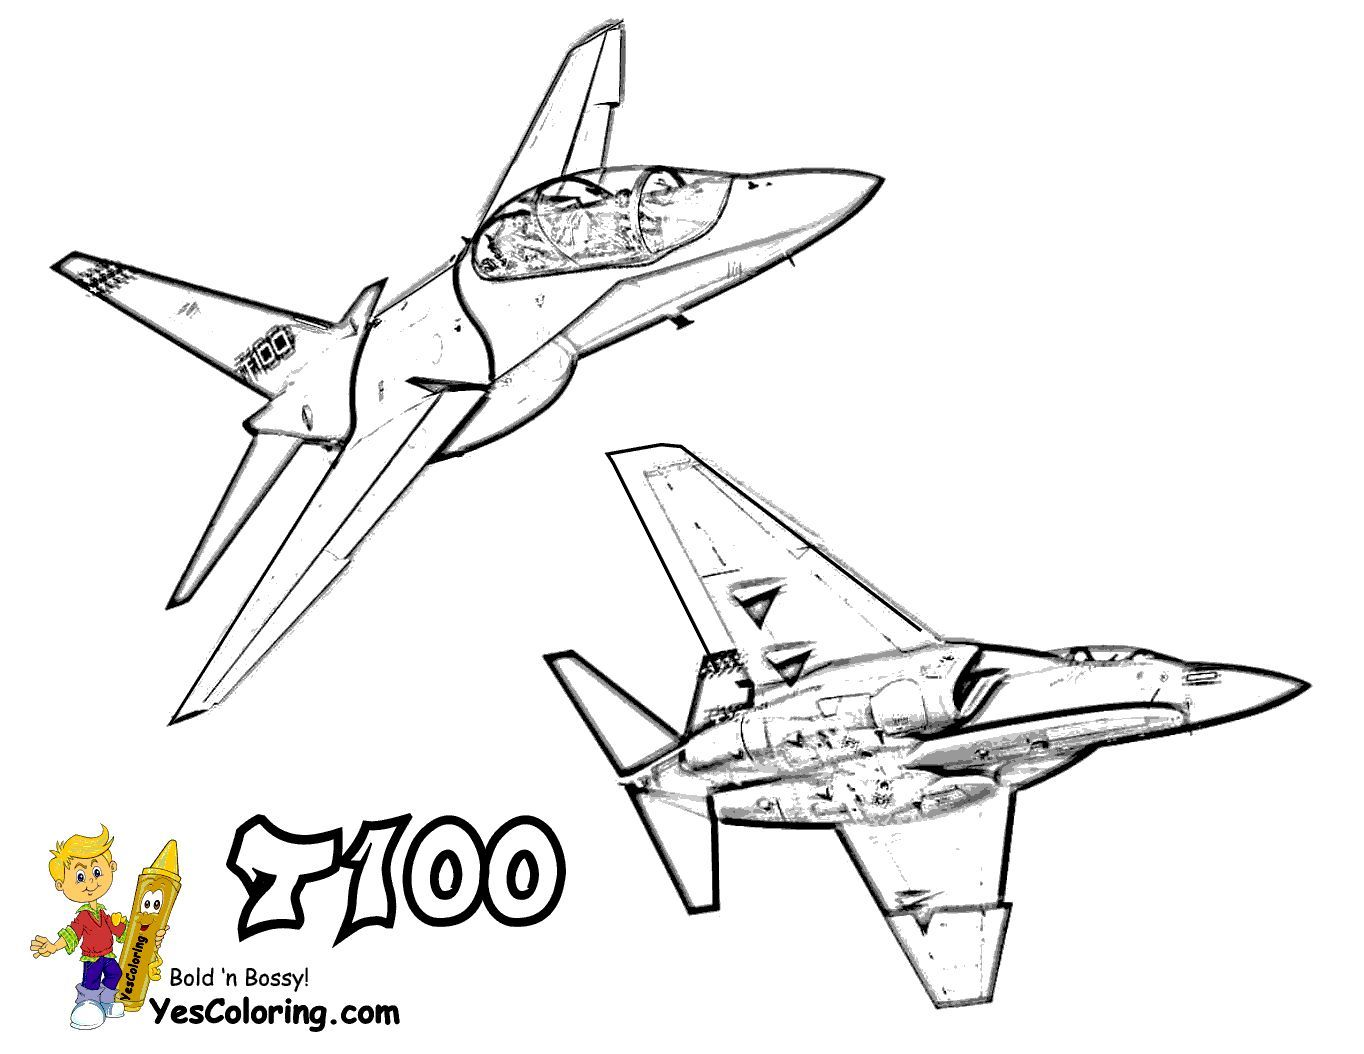 Super Mach Airplane Coloring Pages Airplane coloring